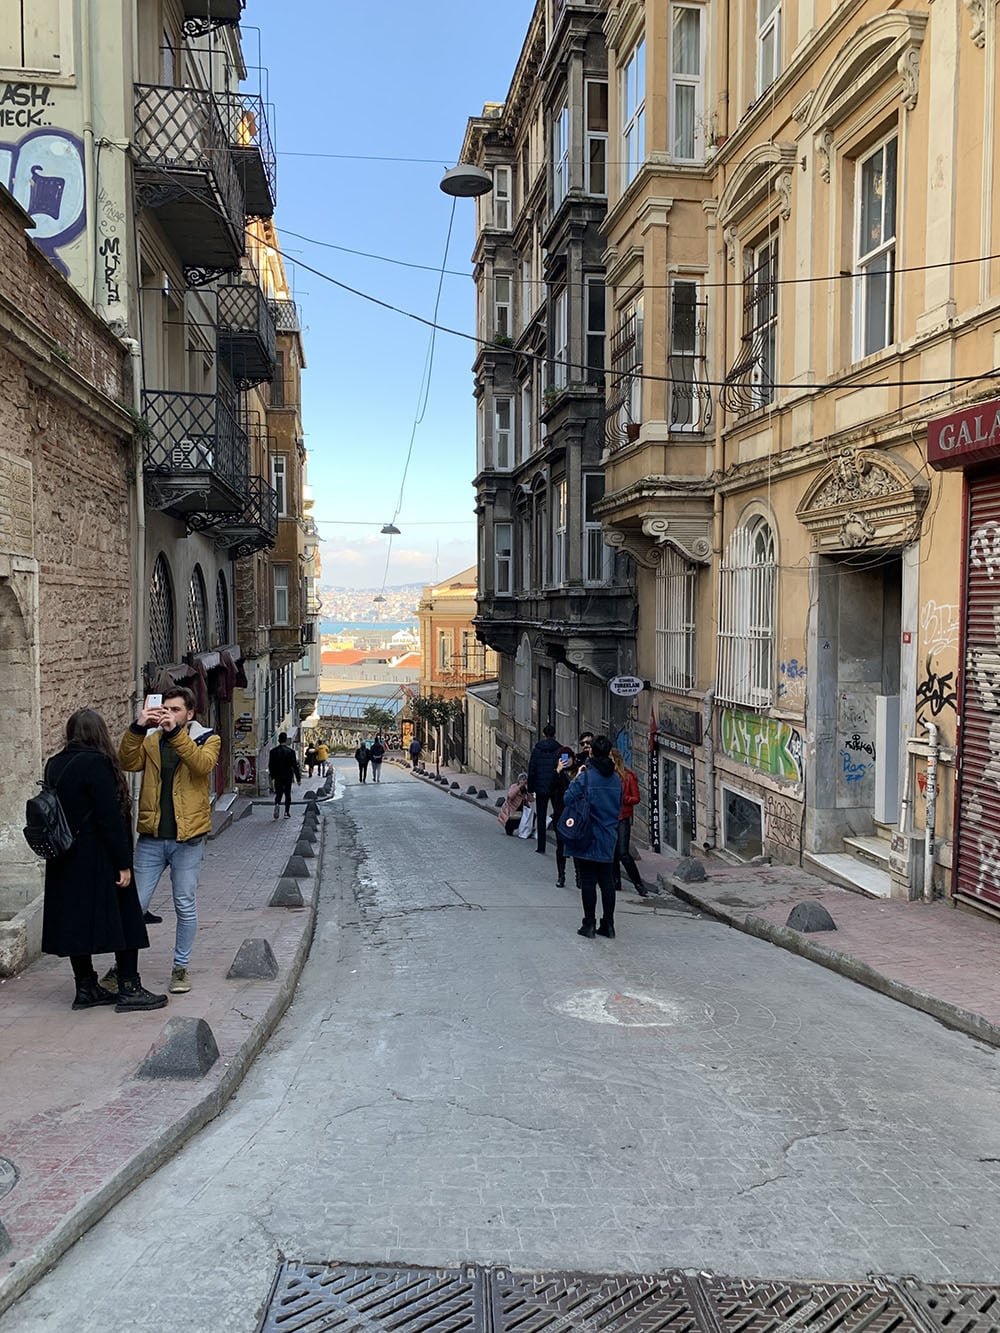 The Galata area in Beyoğlu is popular among the young Istanbullus and tourists for shops, museums and eateries.—All photos by author